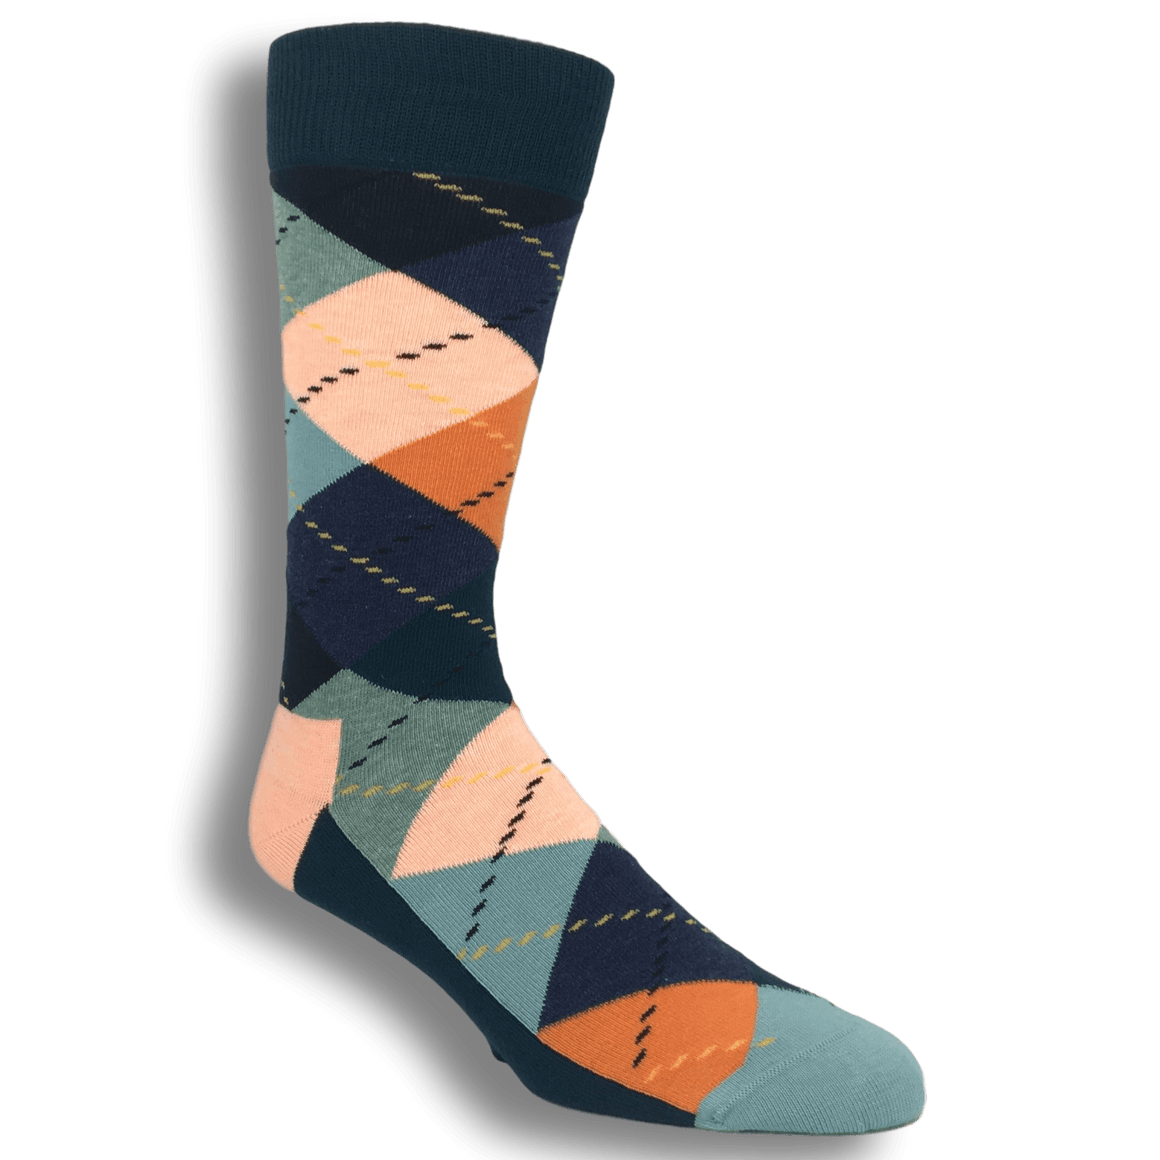 Socks - Orange, Blue, And Grey Argyle Socks By Happy Socks